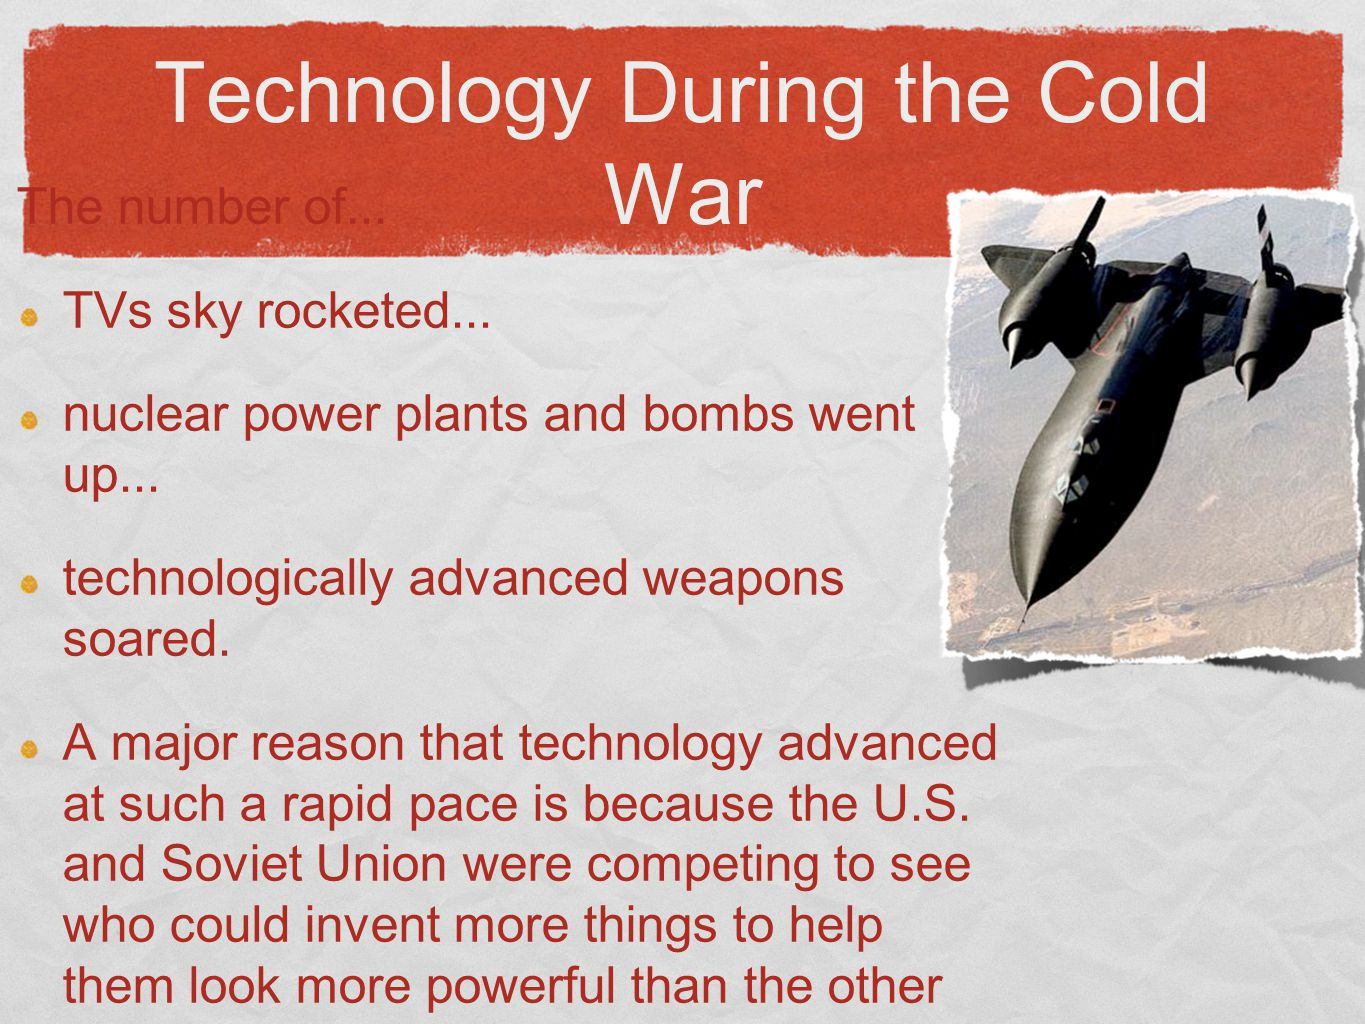 How Did Technology Advance as a Result Of the Cold War?